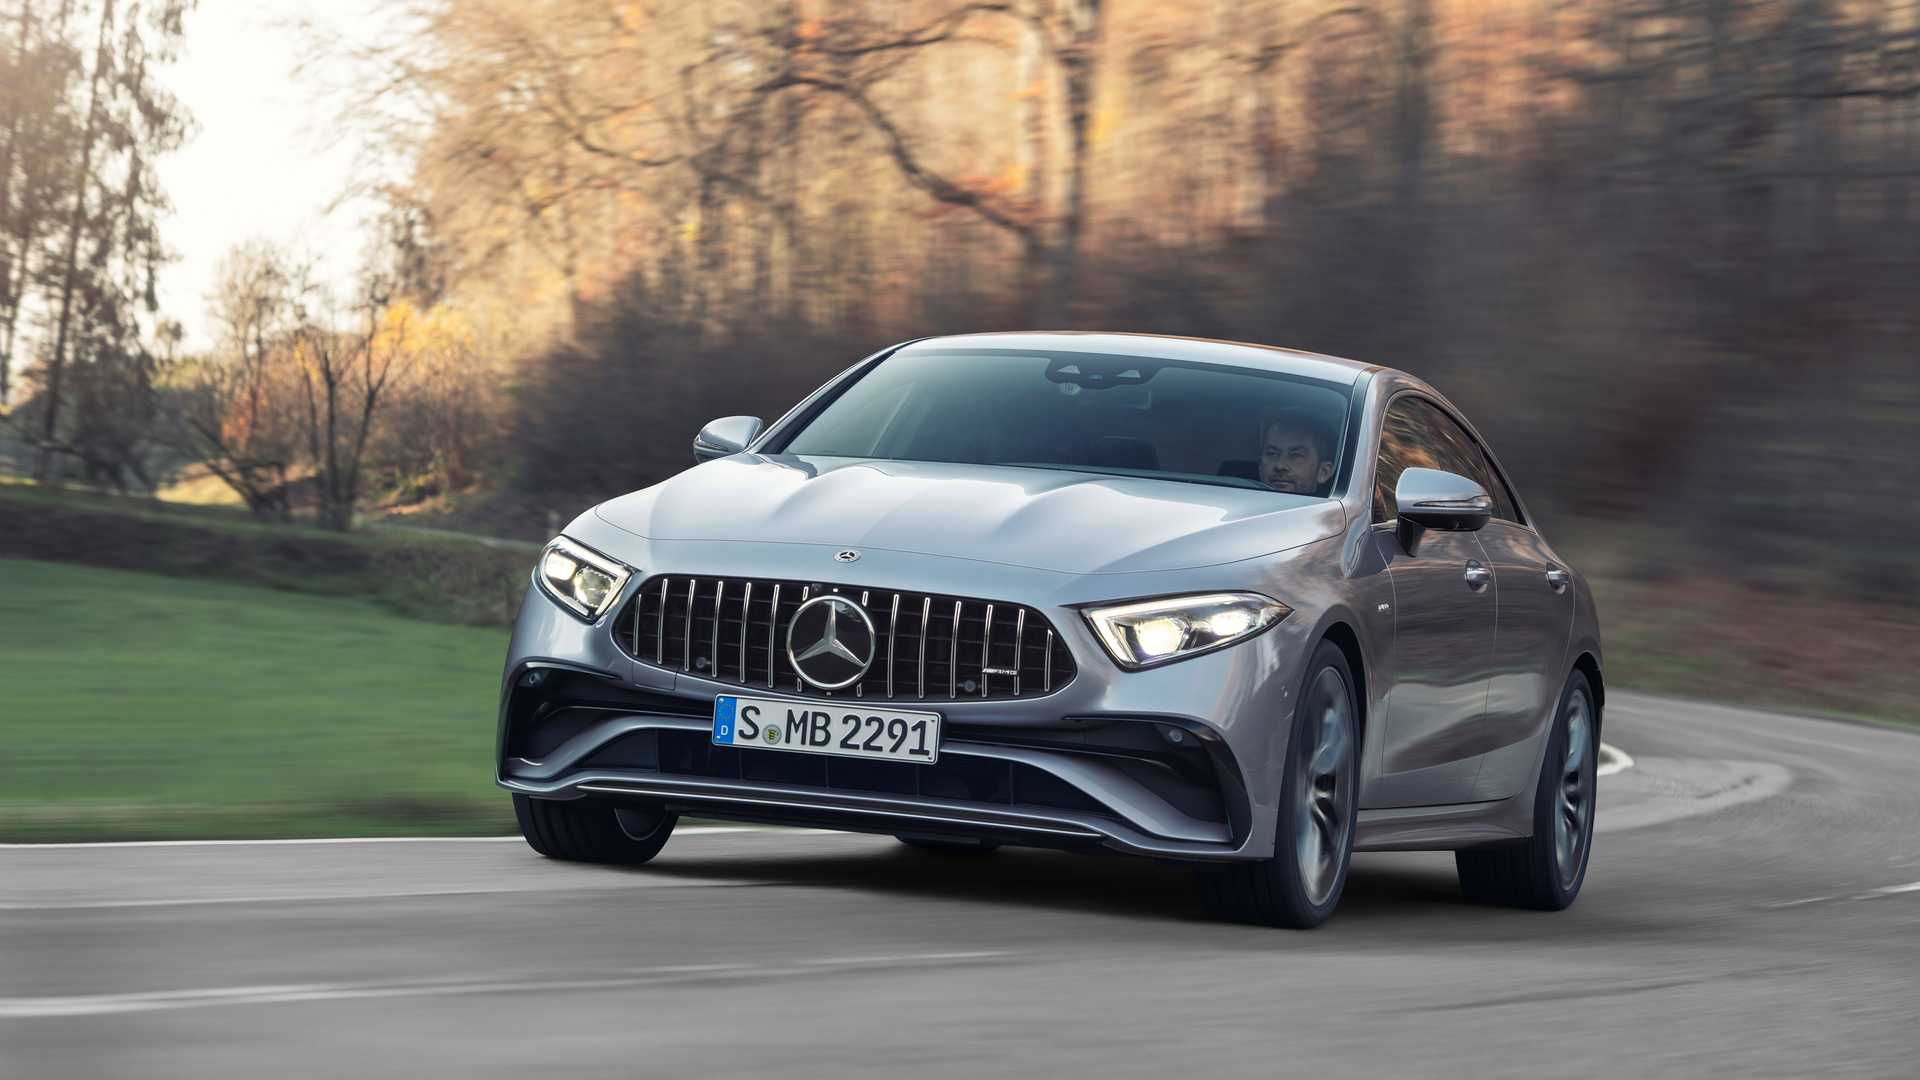 Mercedes cut down a significant portion of its North American CLS lineup earlier today, getting rid of both the CLS 450 (entry-level RWD spec) and the AMG CLS 53 (top spec). Customers in Europe proved much luckier than that: they can still order the regular AMG version, as well as a special edition limited to 300 units.